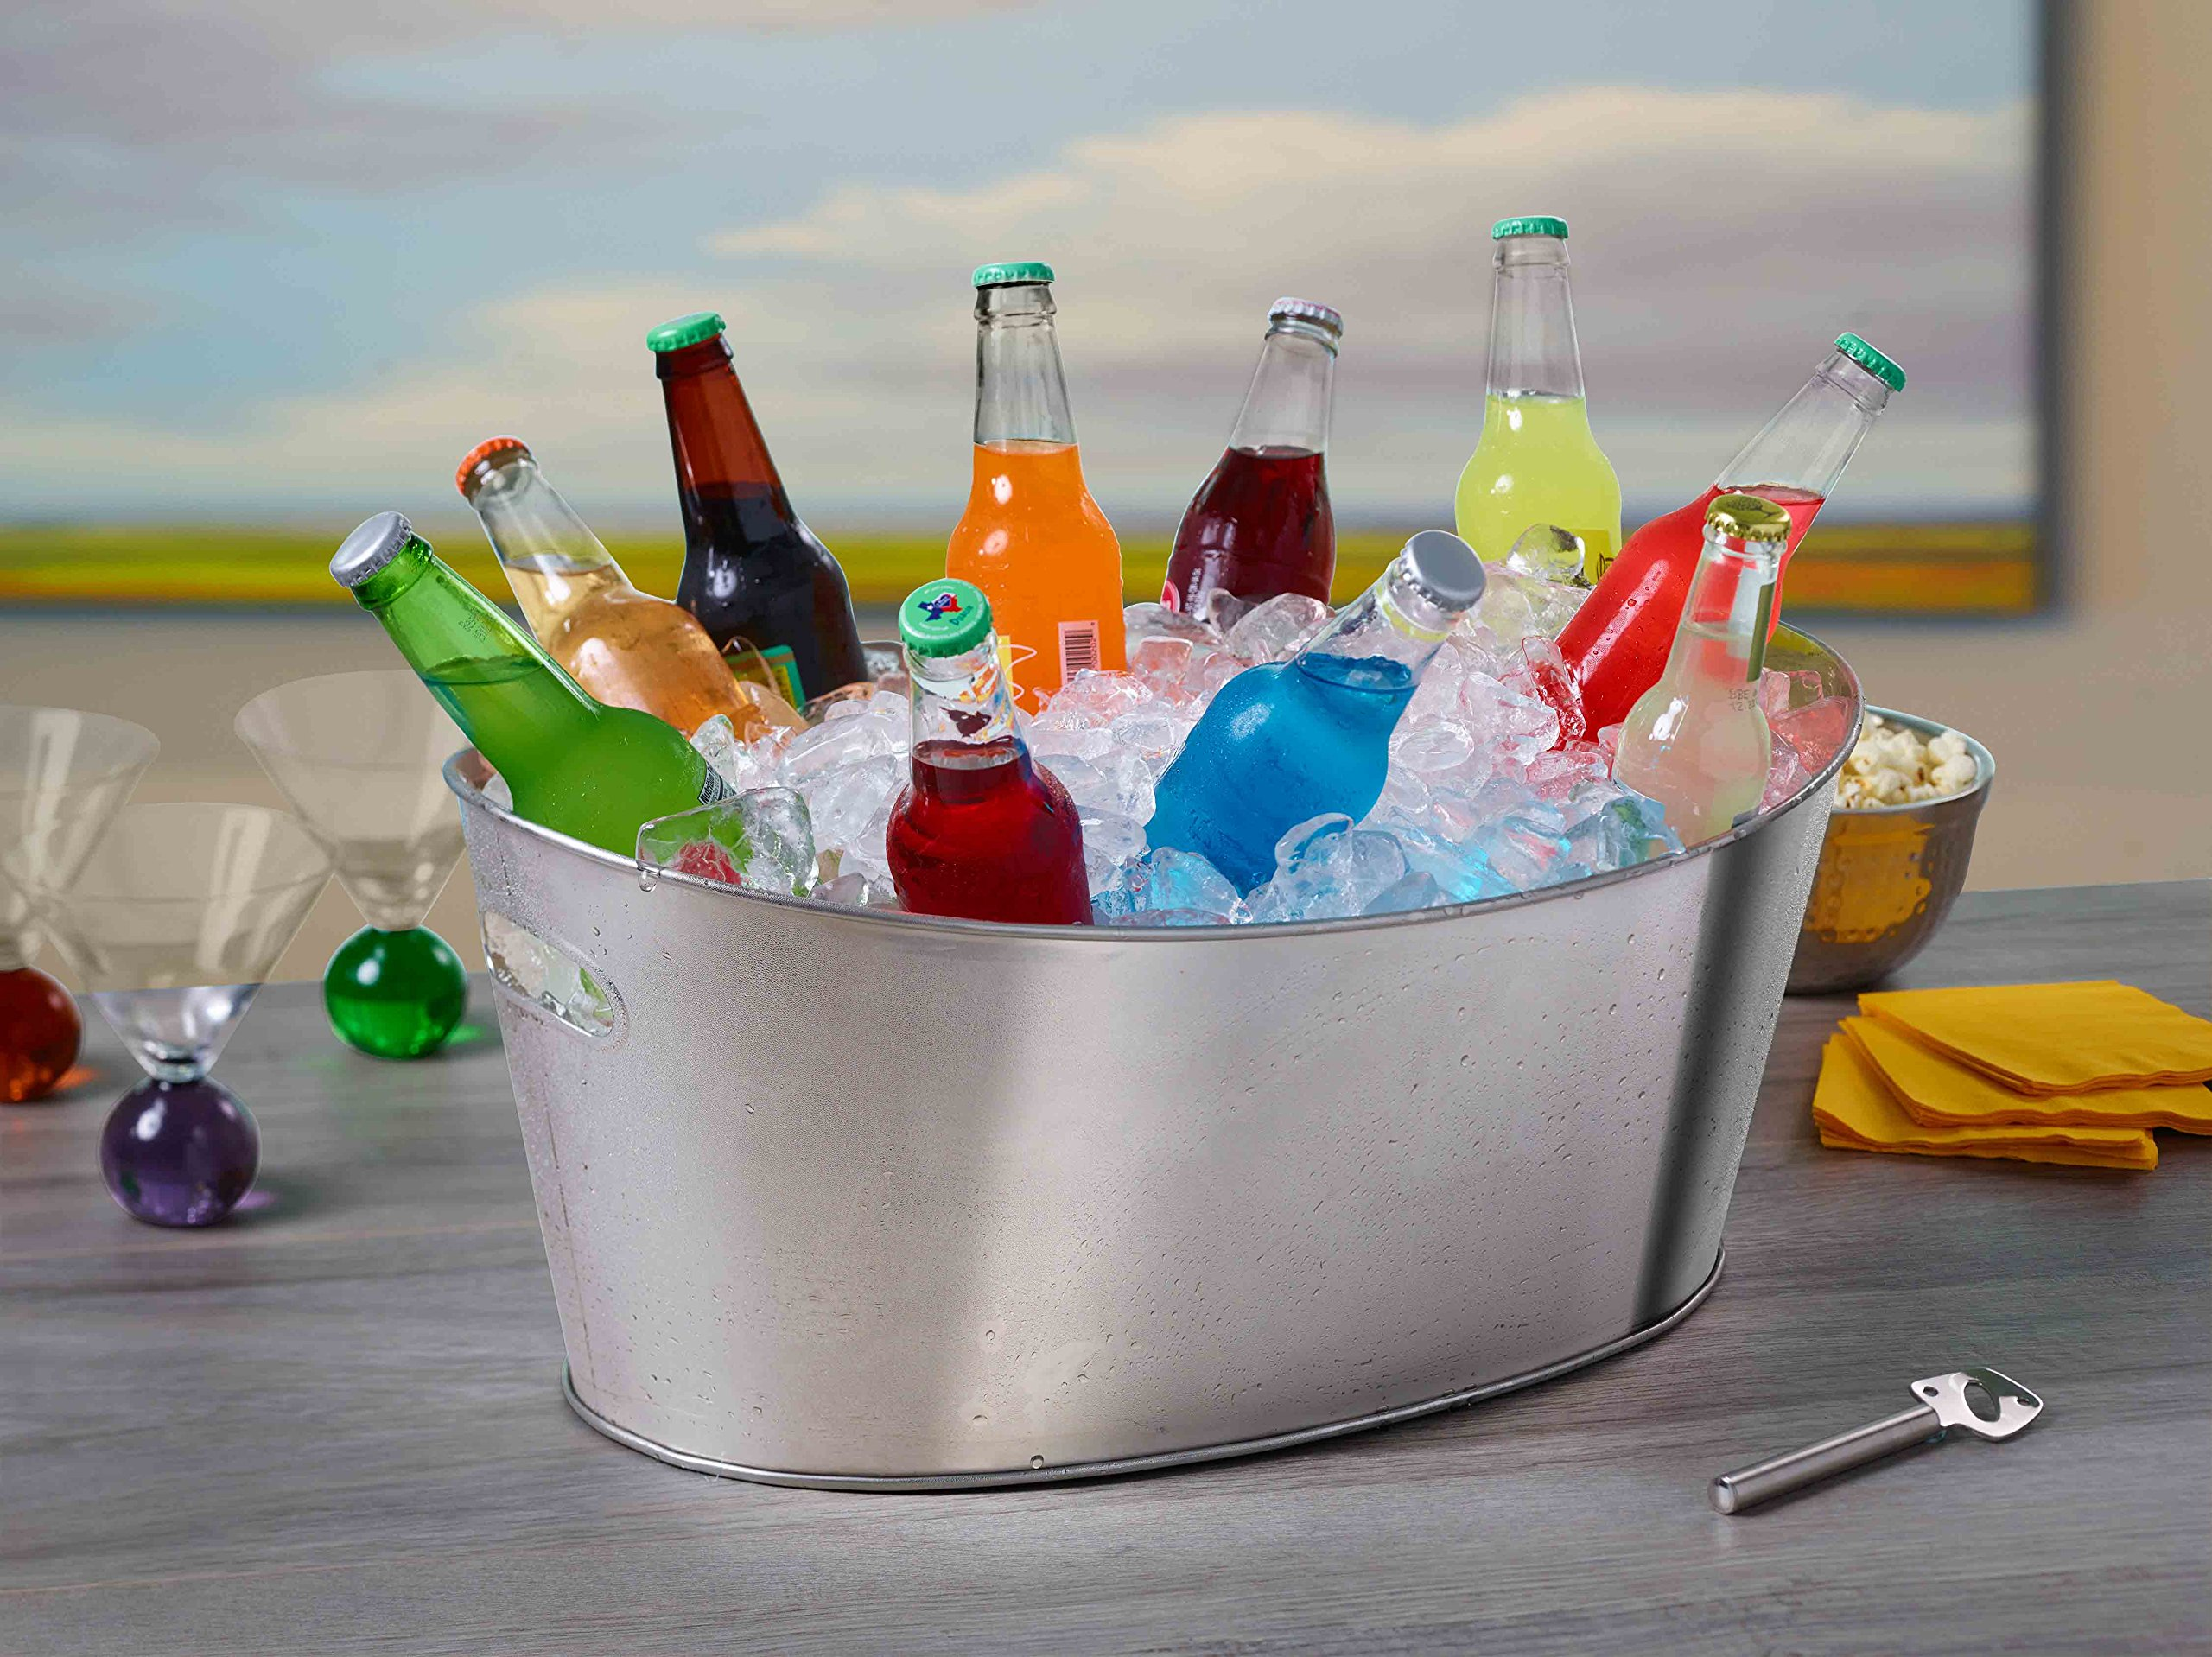 BirdRock Home Oval Party Beverage Tub | Holds Soda, Beer, Wine and Champagne | Stainless Steel